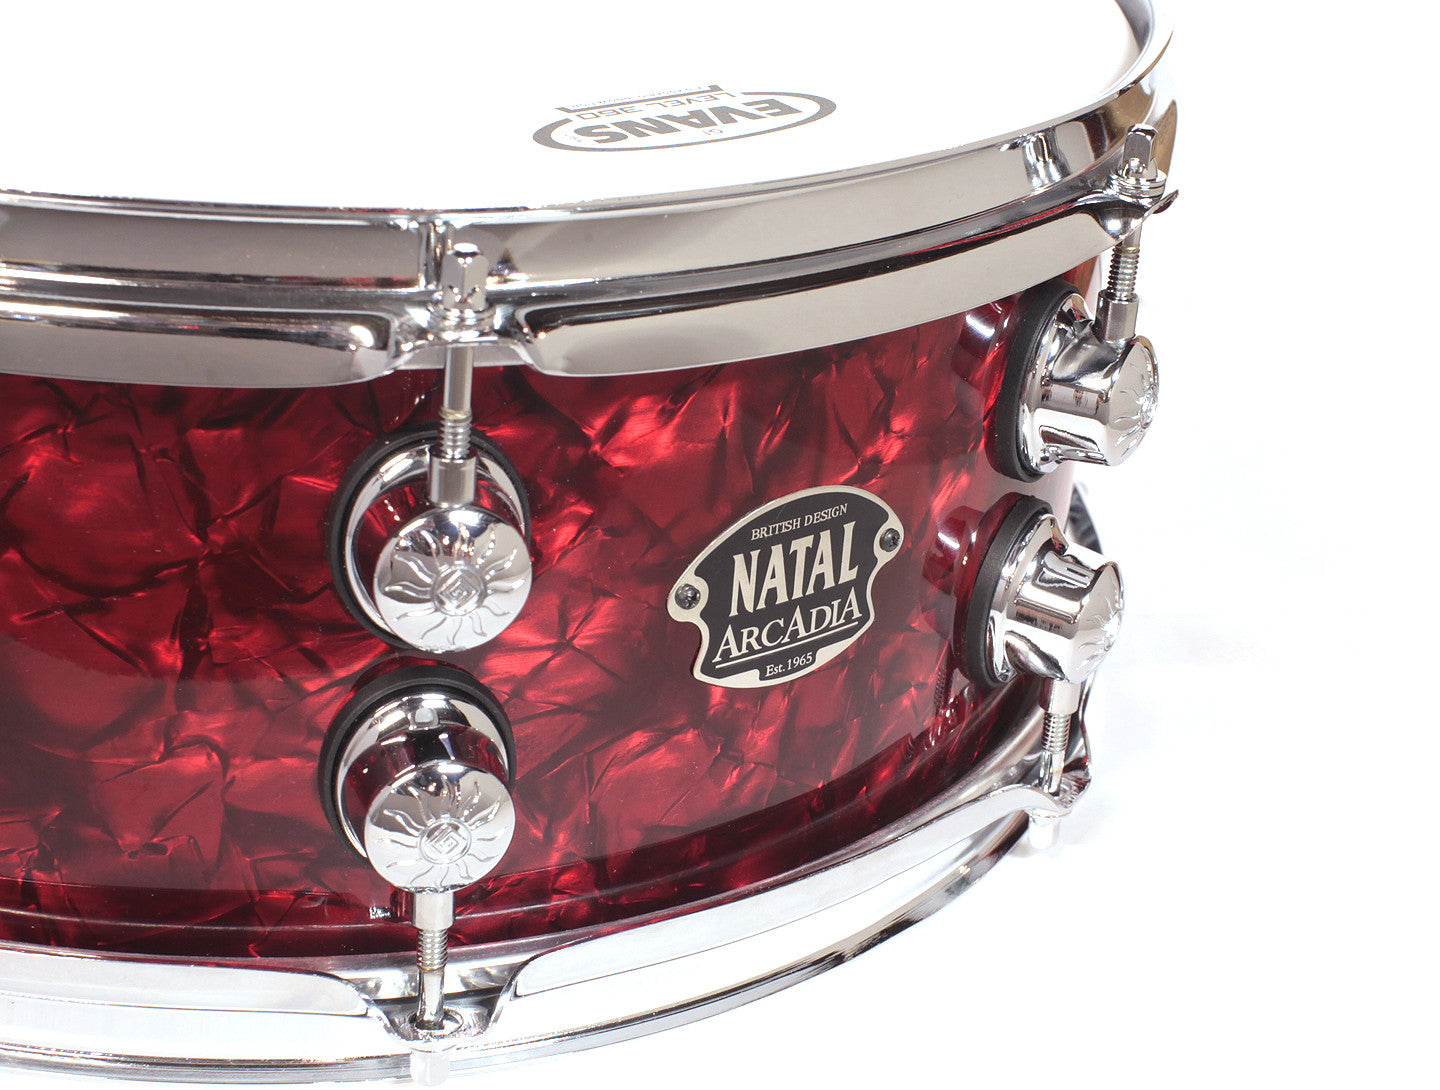 Natal Arcadia The '65 Snare Drum